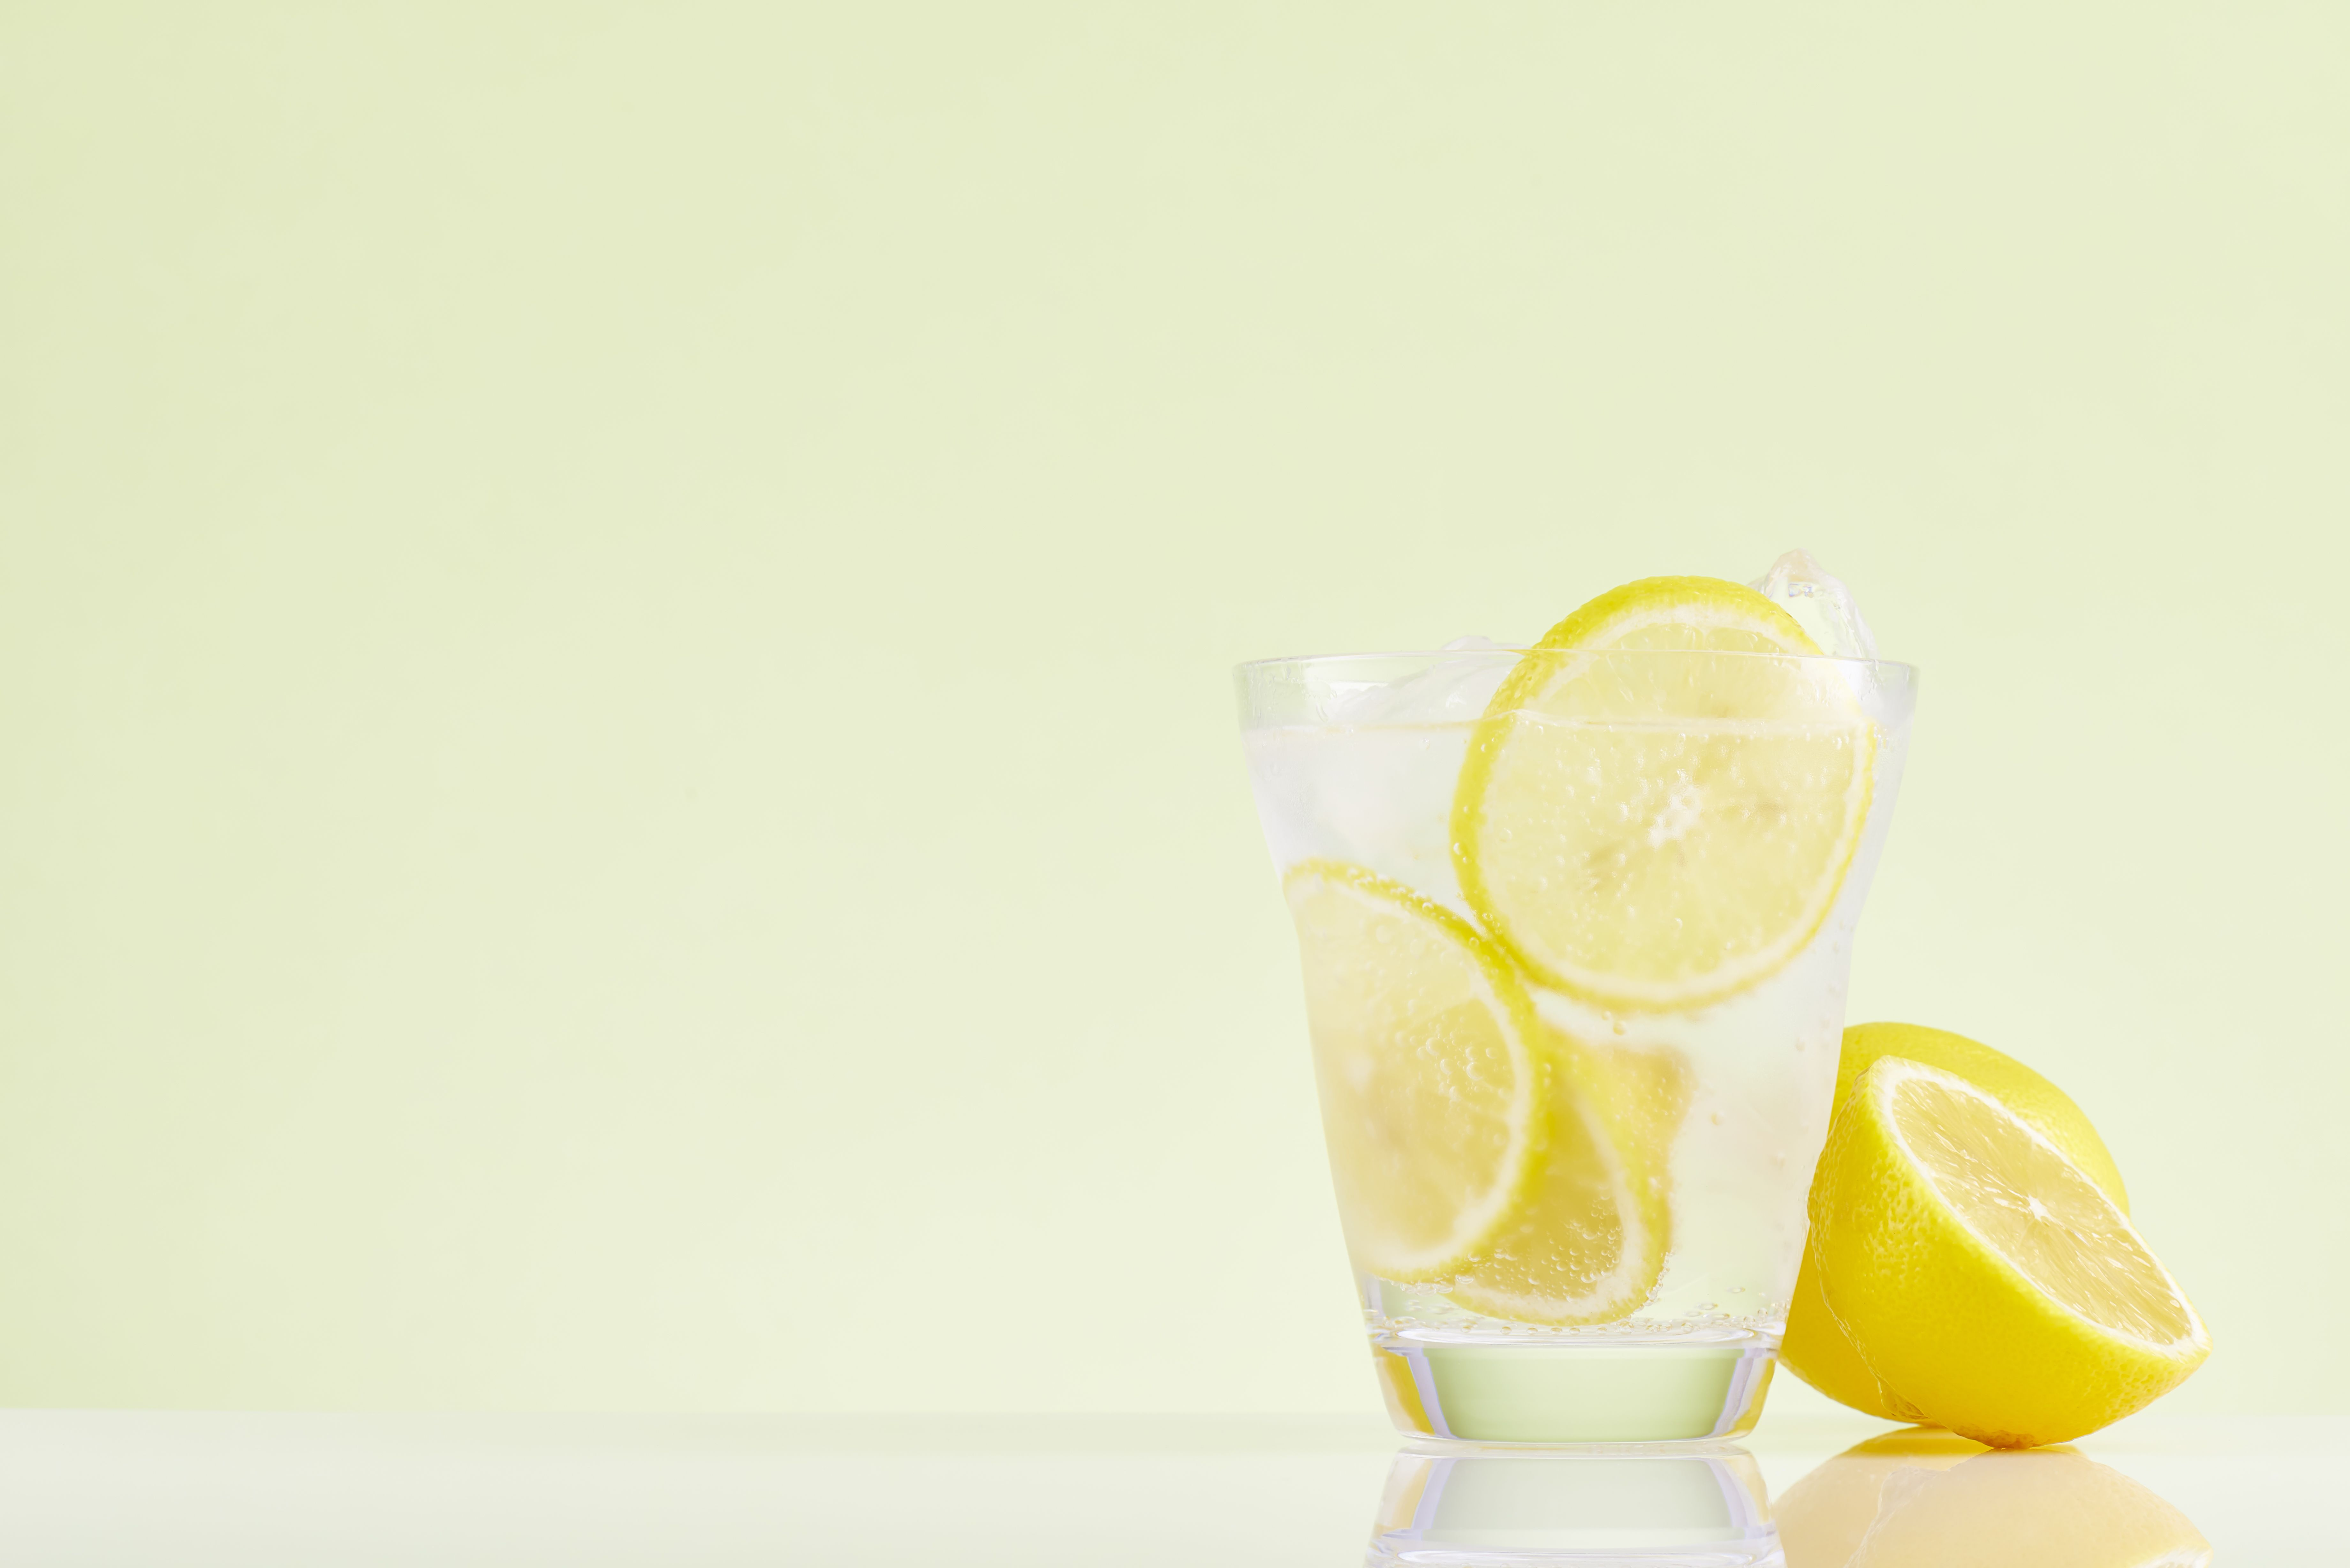 Is Lemon Water Good for You? - Lemon Water in the Morning